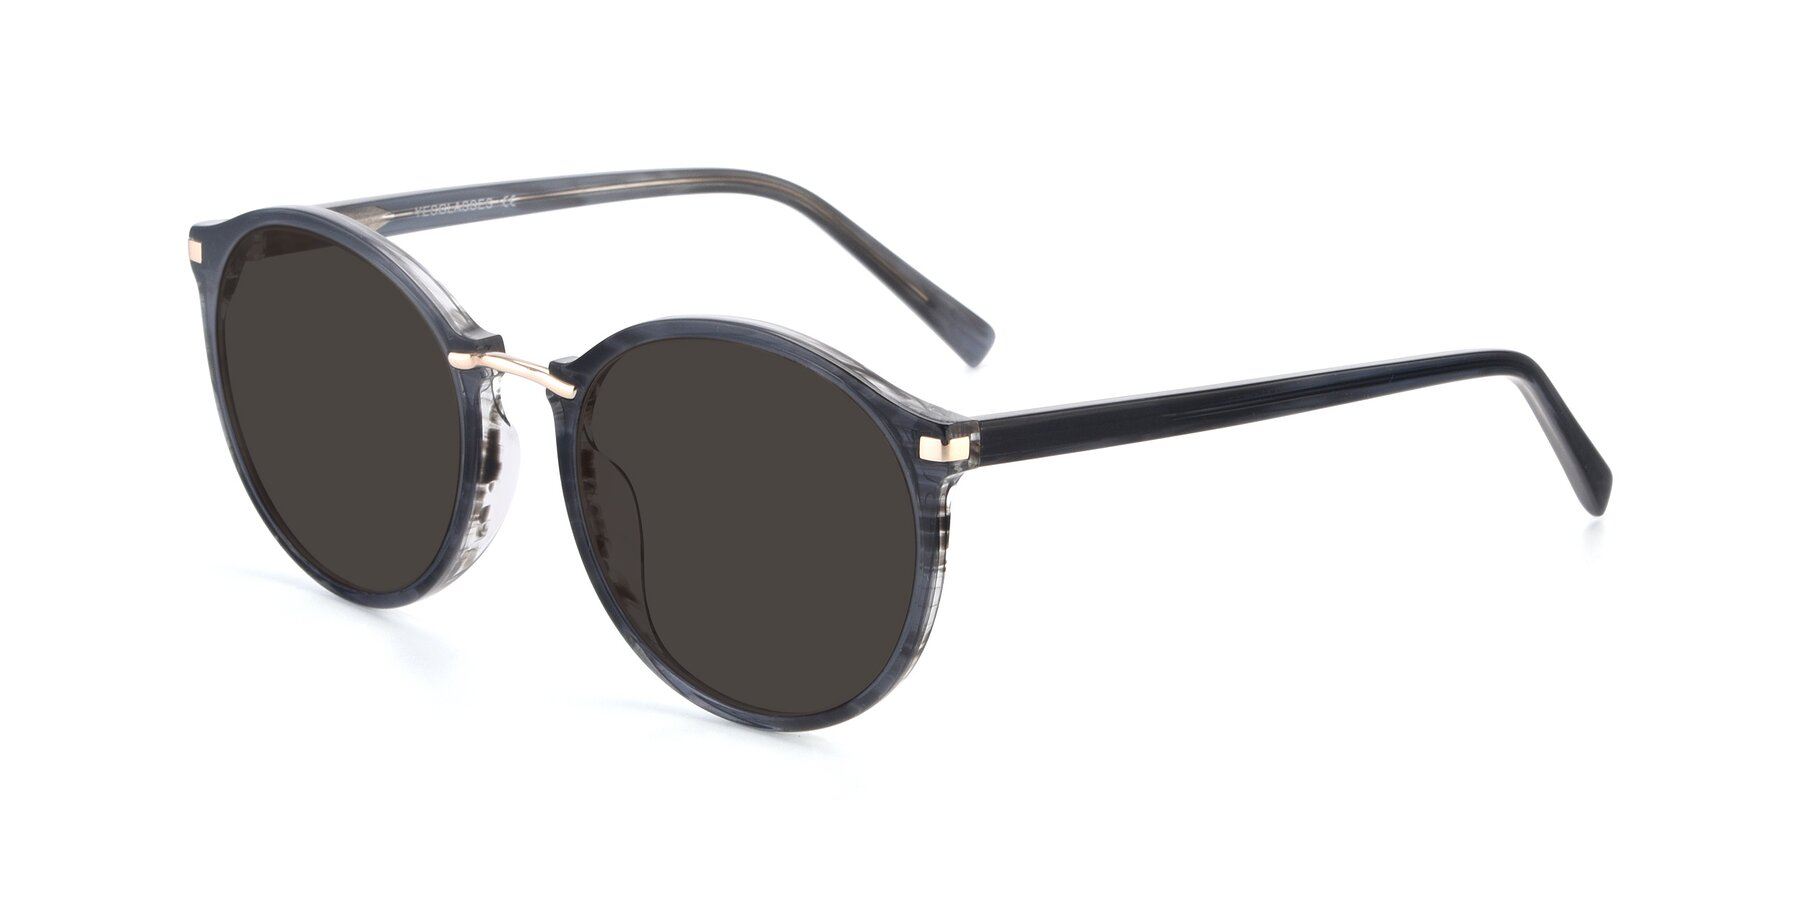 Angle of 17582 in Translucent Black with Gray Tinted Lenses